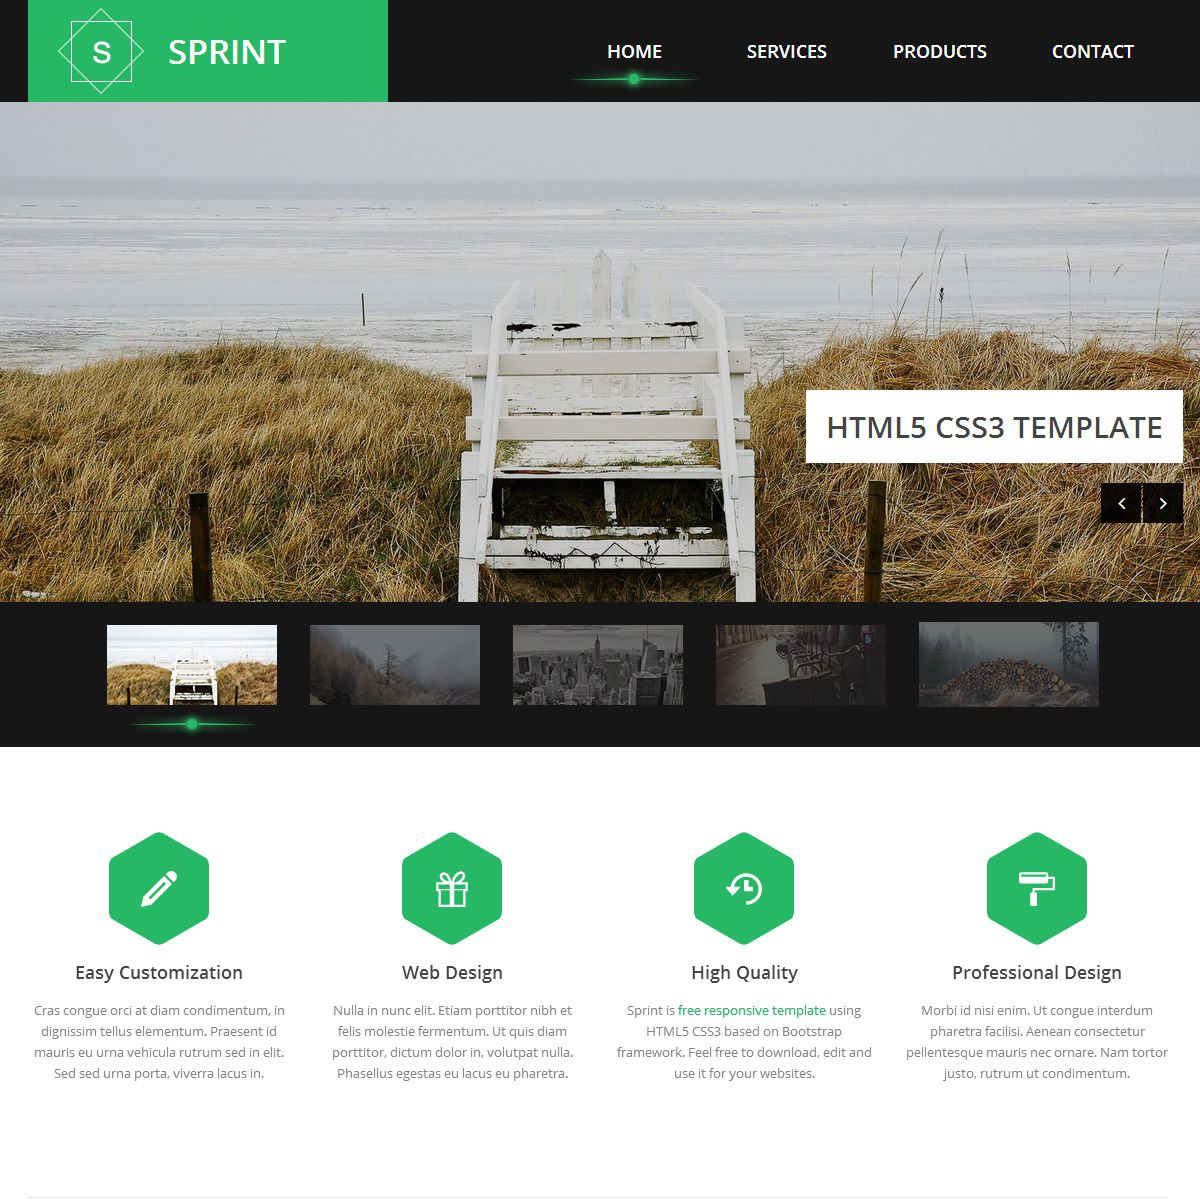 009 Amazing Website Template Html Cs Free Download Picture  Registration Page With Javascript Jquery Responsive Student FormFull